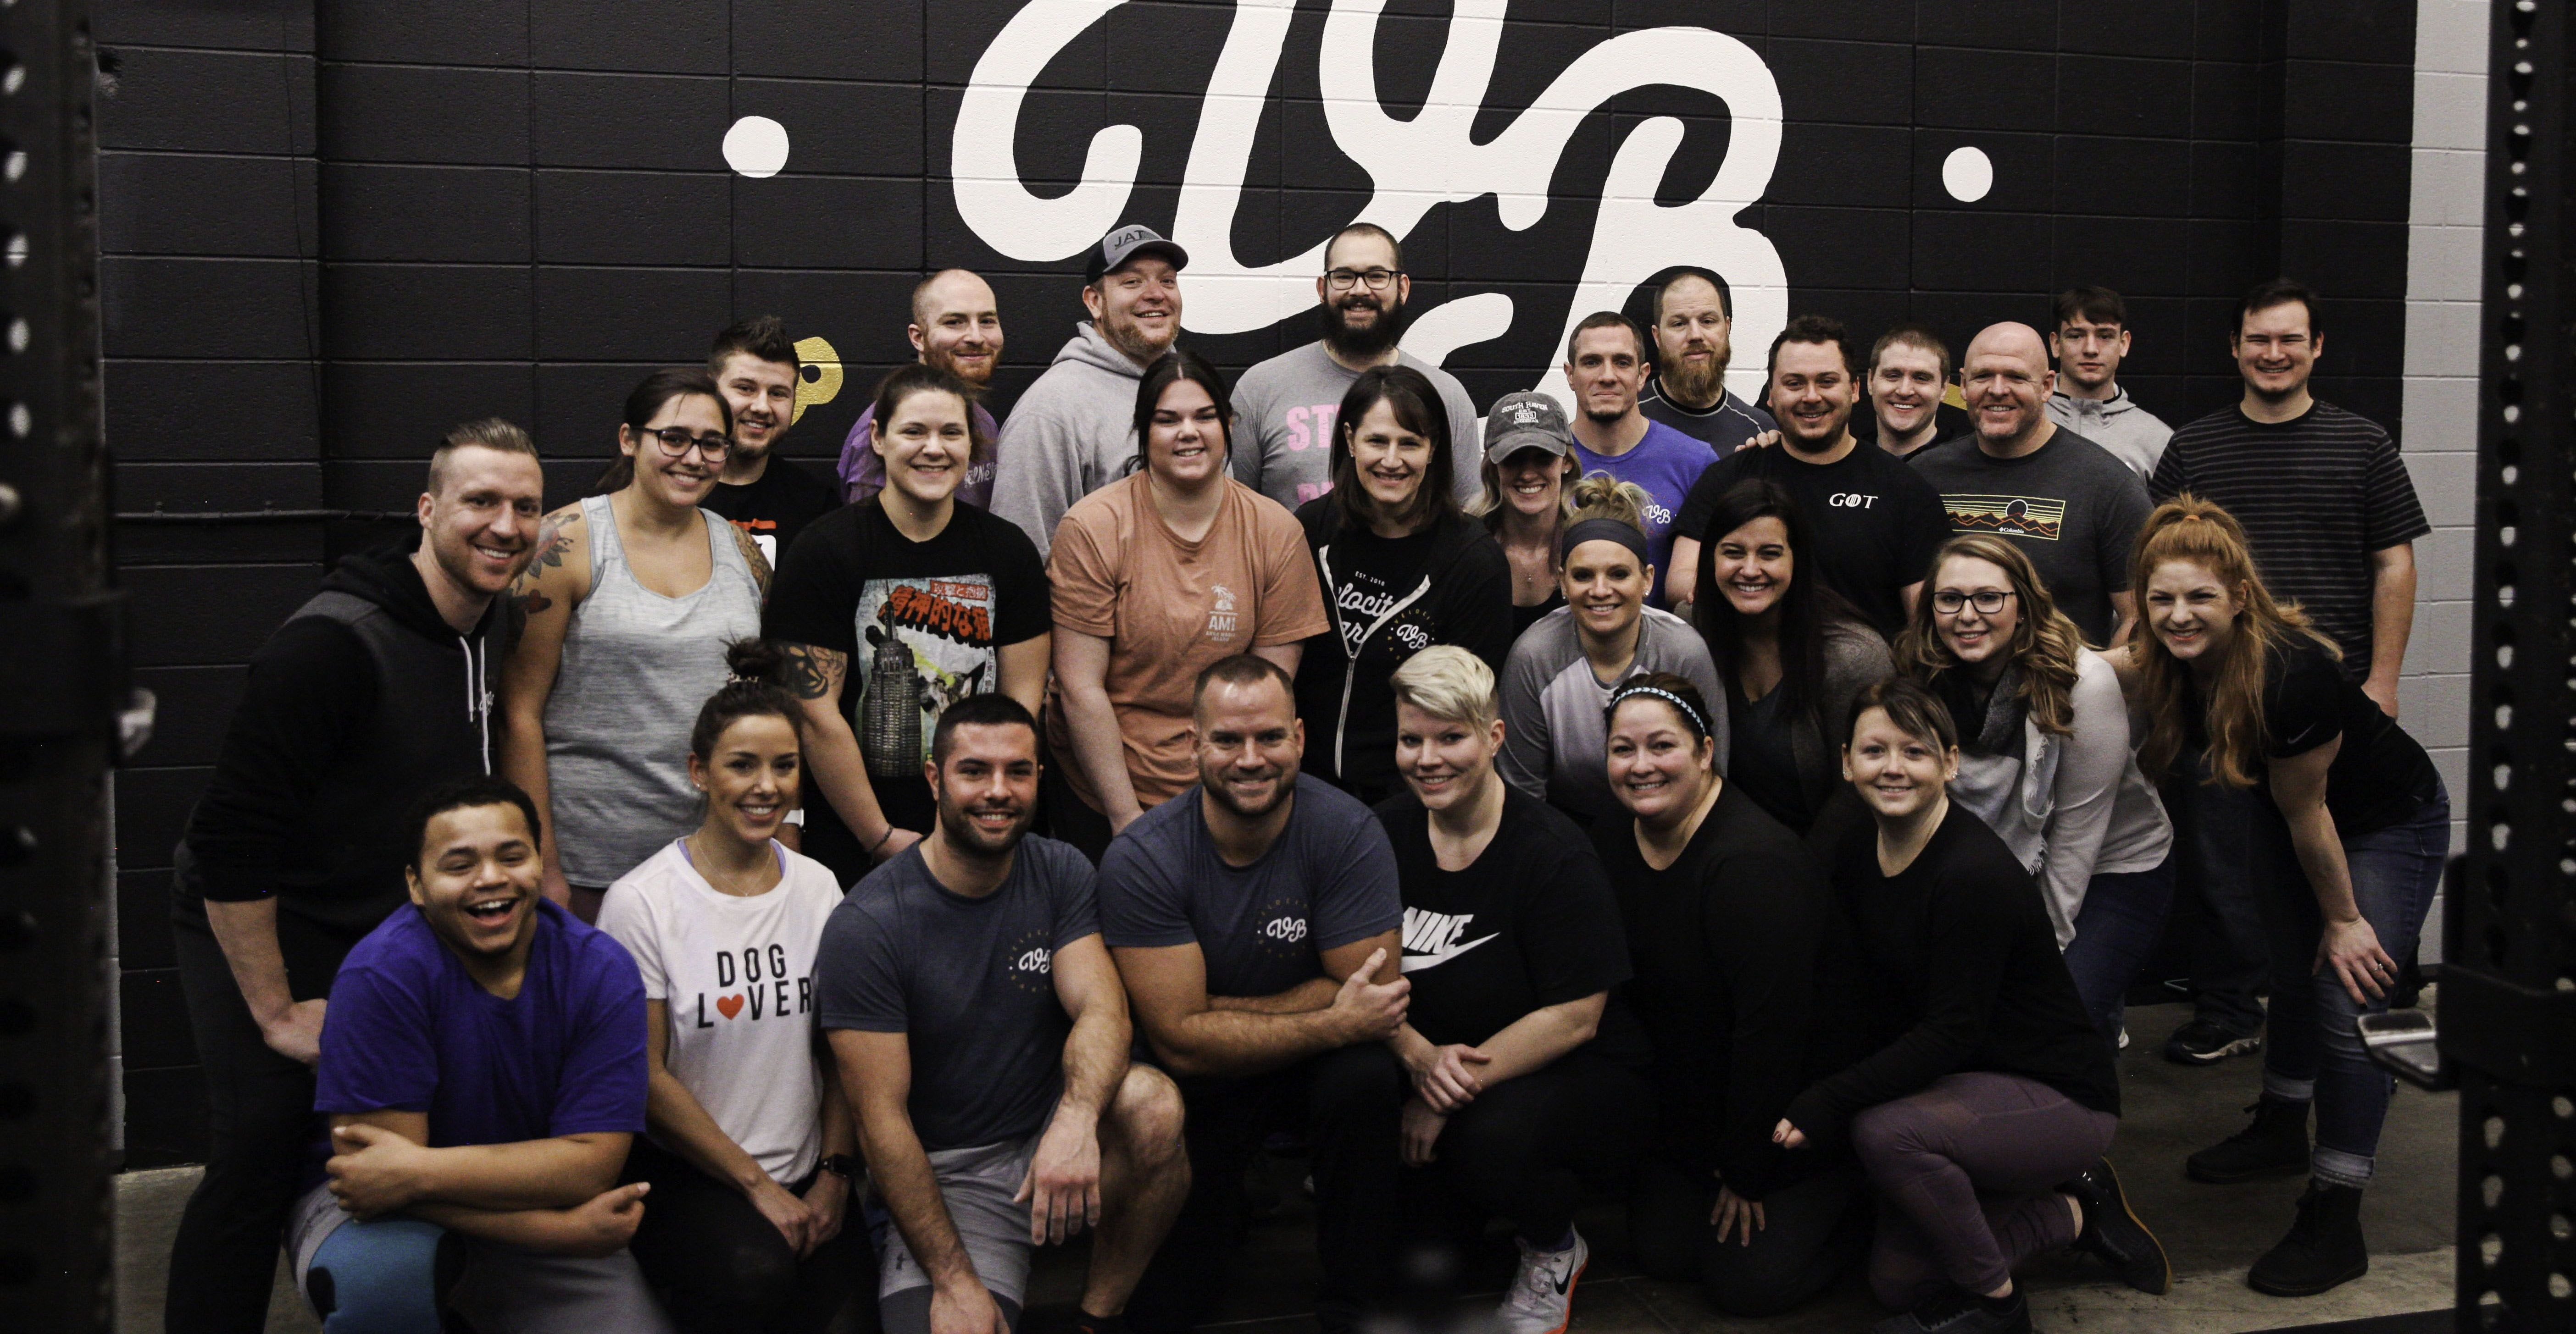 Personal Training and Group Fitness for All of Fort Wayne